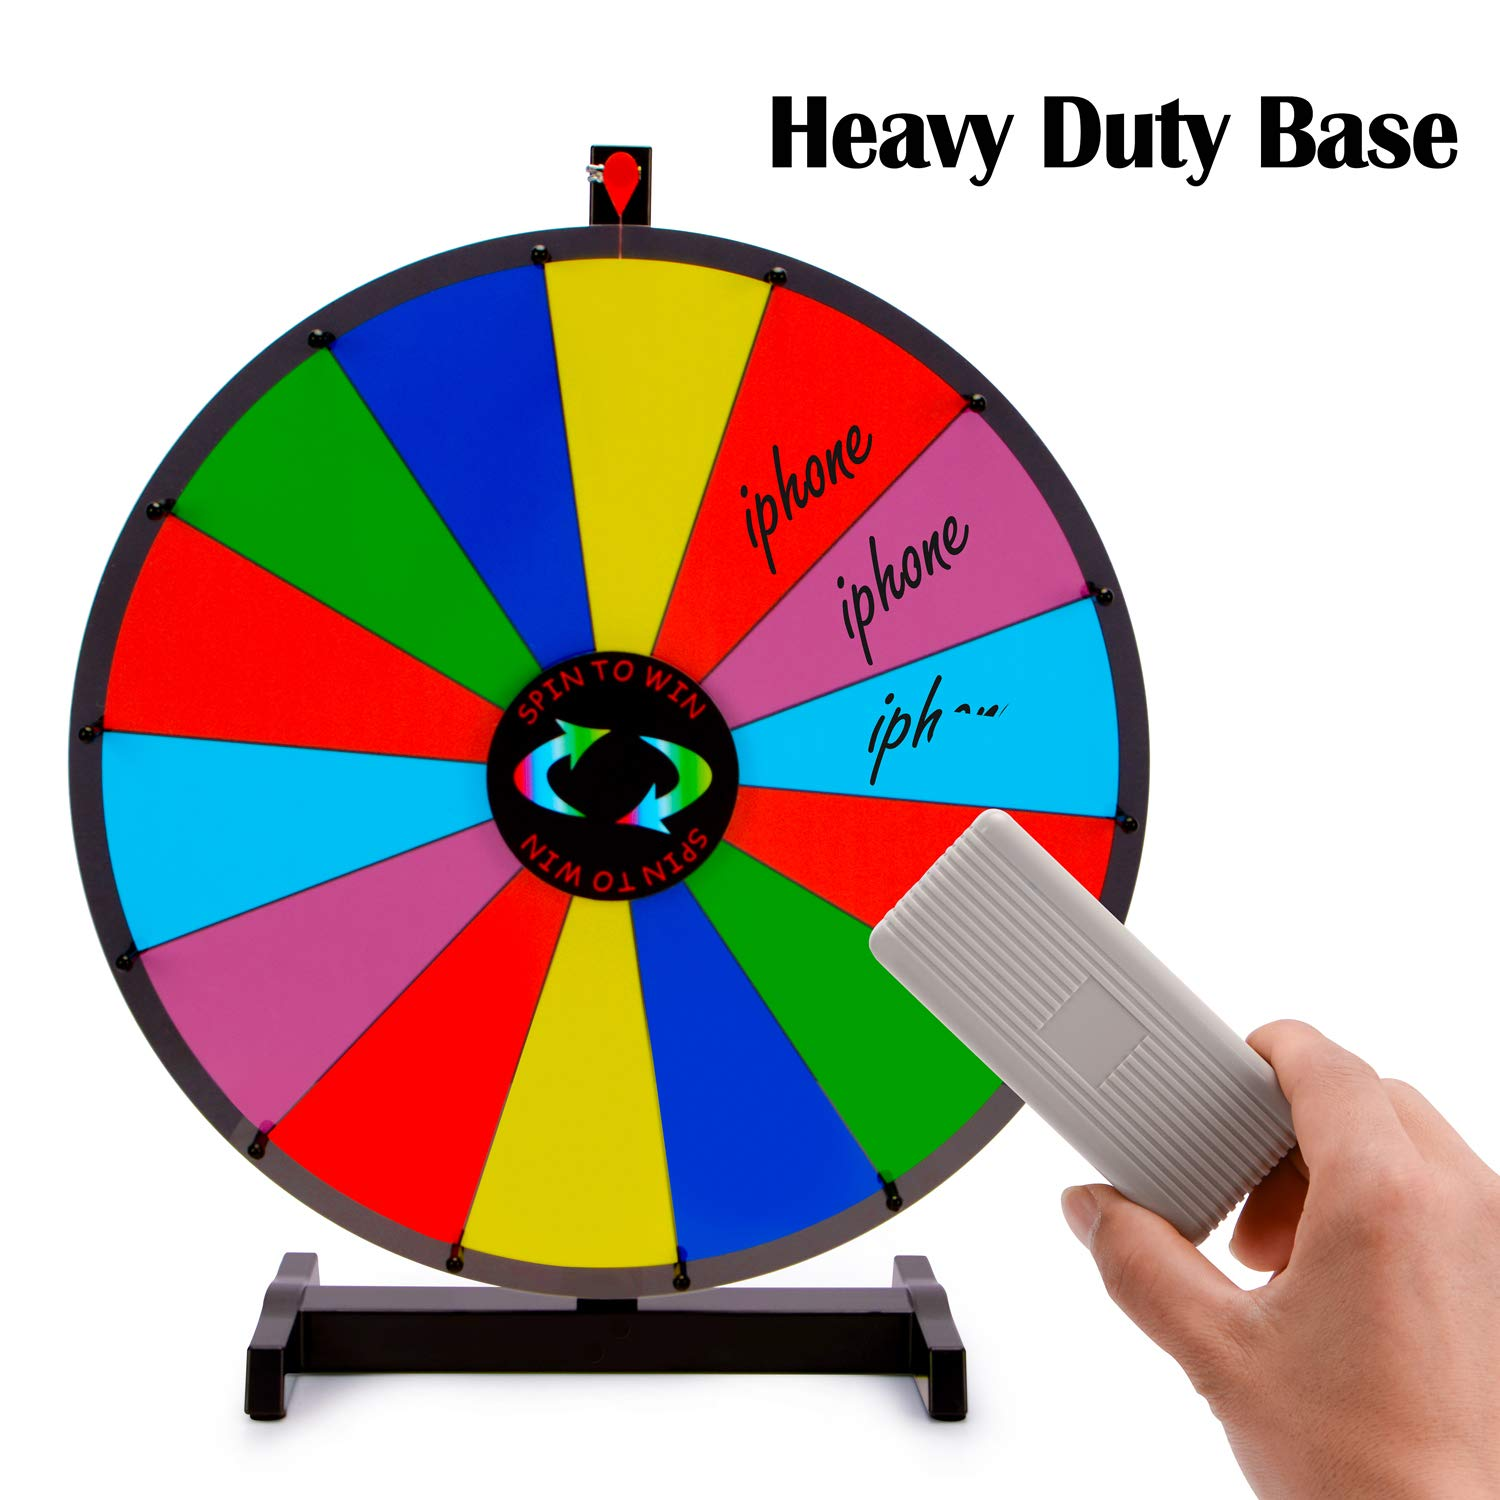 T-SIGN 24'' Heavy Duty Tabletop Spinning Prize Wheel, 14 Slots Color Prize Wheel Spinner with Dry Erase Marker & Eraser As Customized Gifts for Carnival and Trade Show, Win The Fortune Spin Game